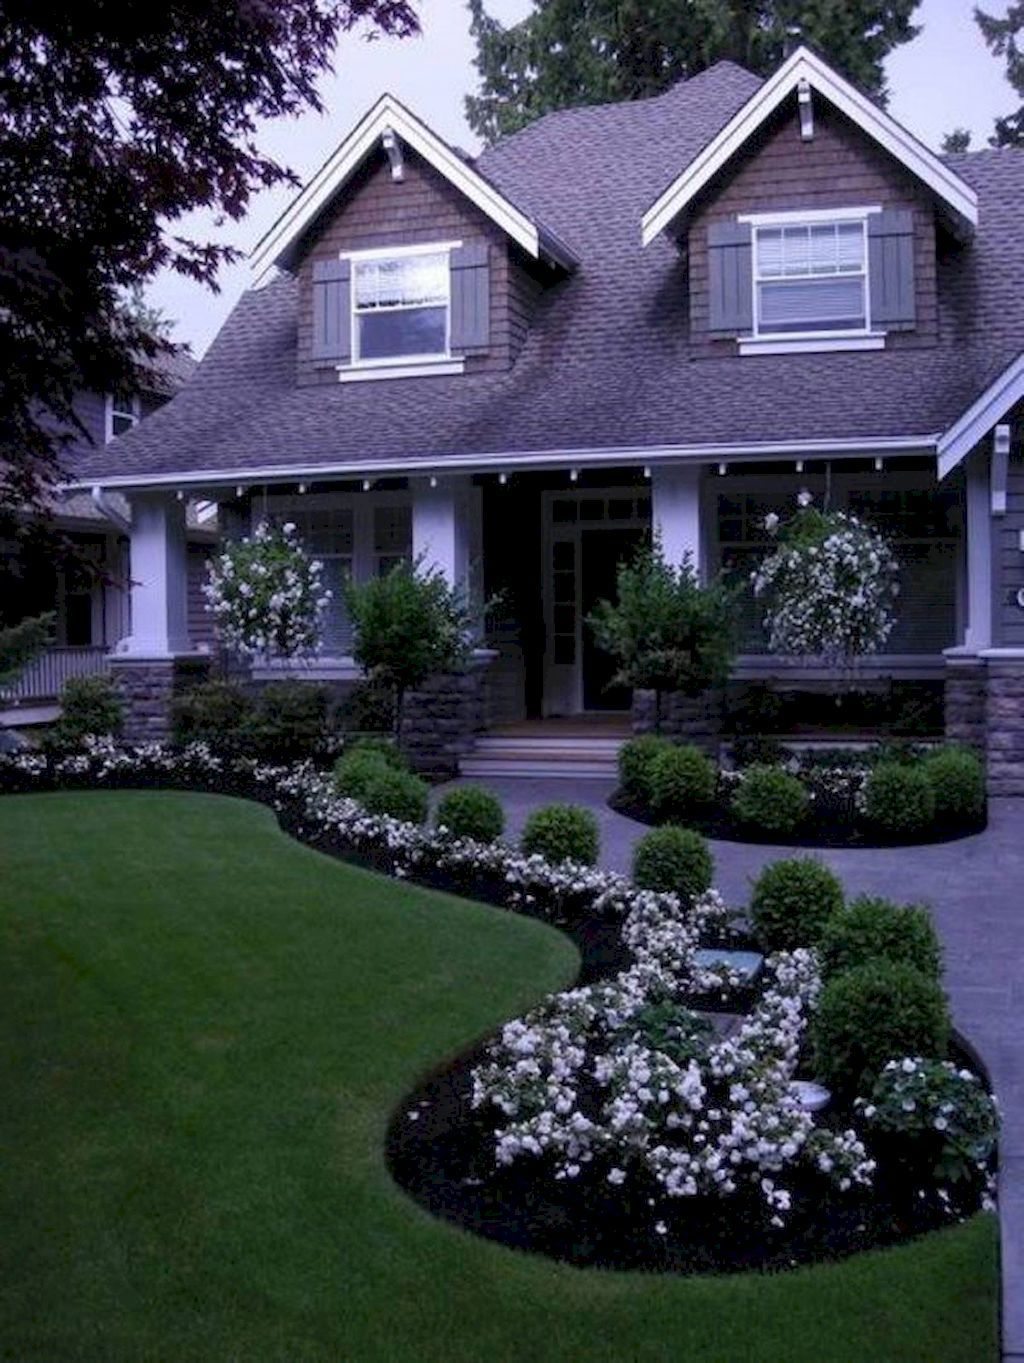 40 beautiful front yard landscaping ideas yard for Landscaping pictures for front yard